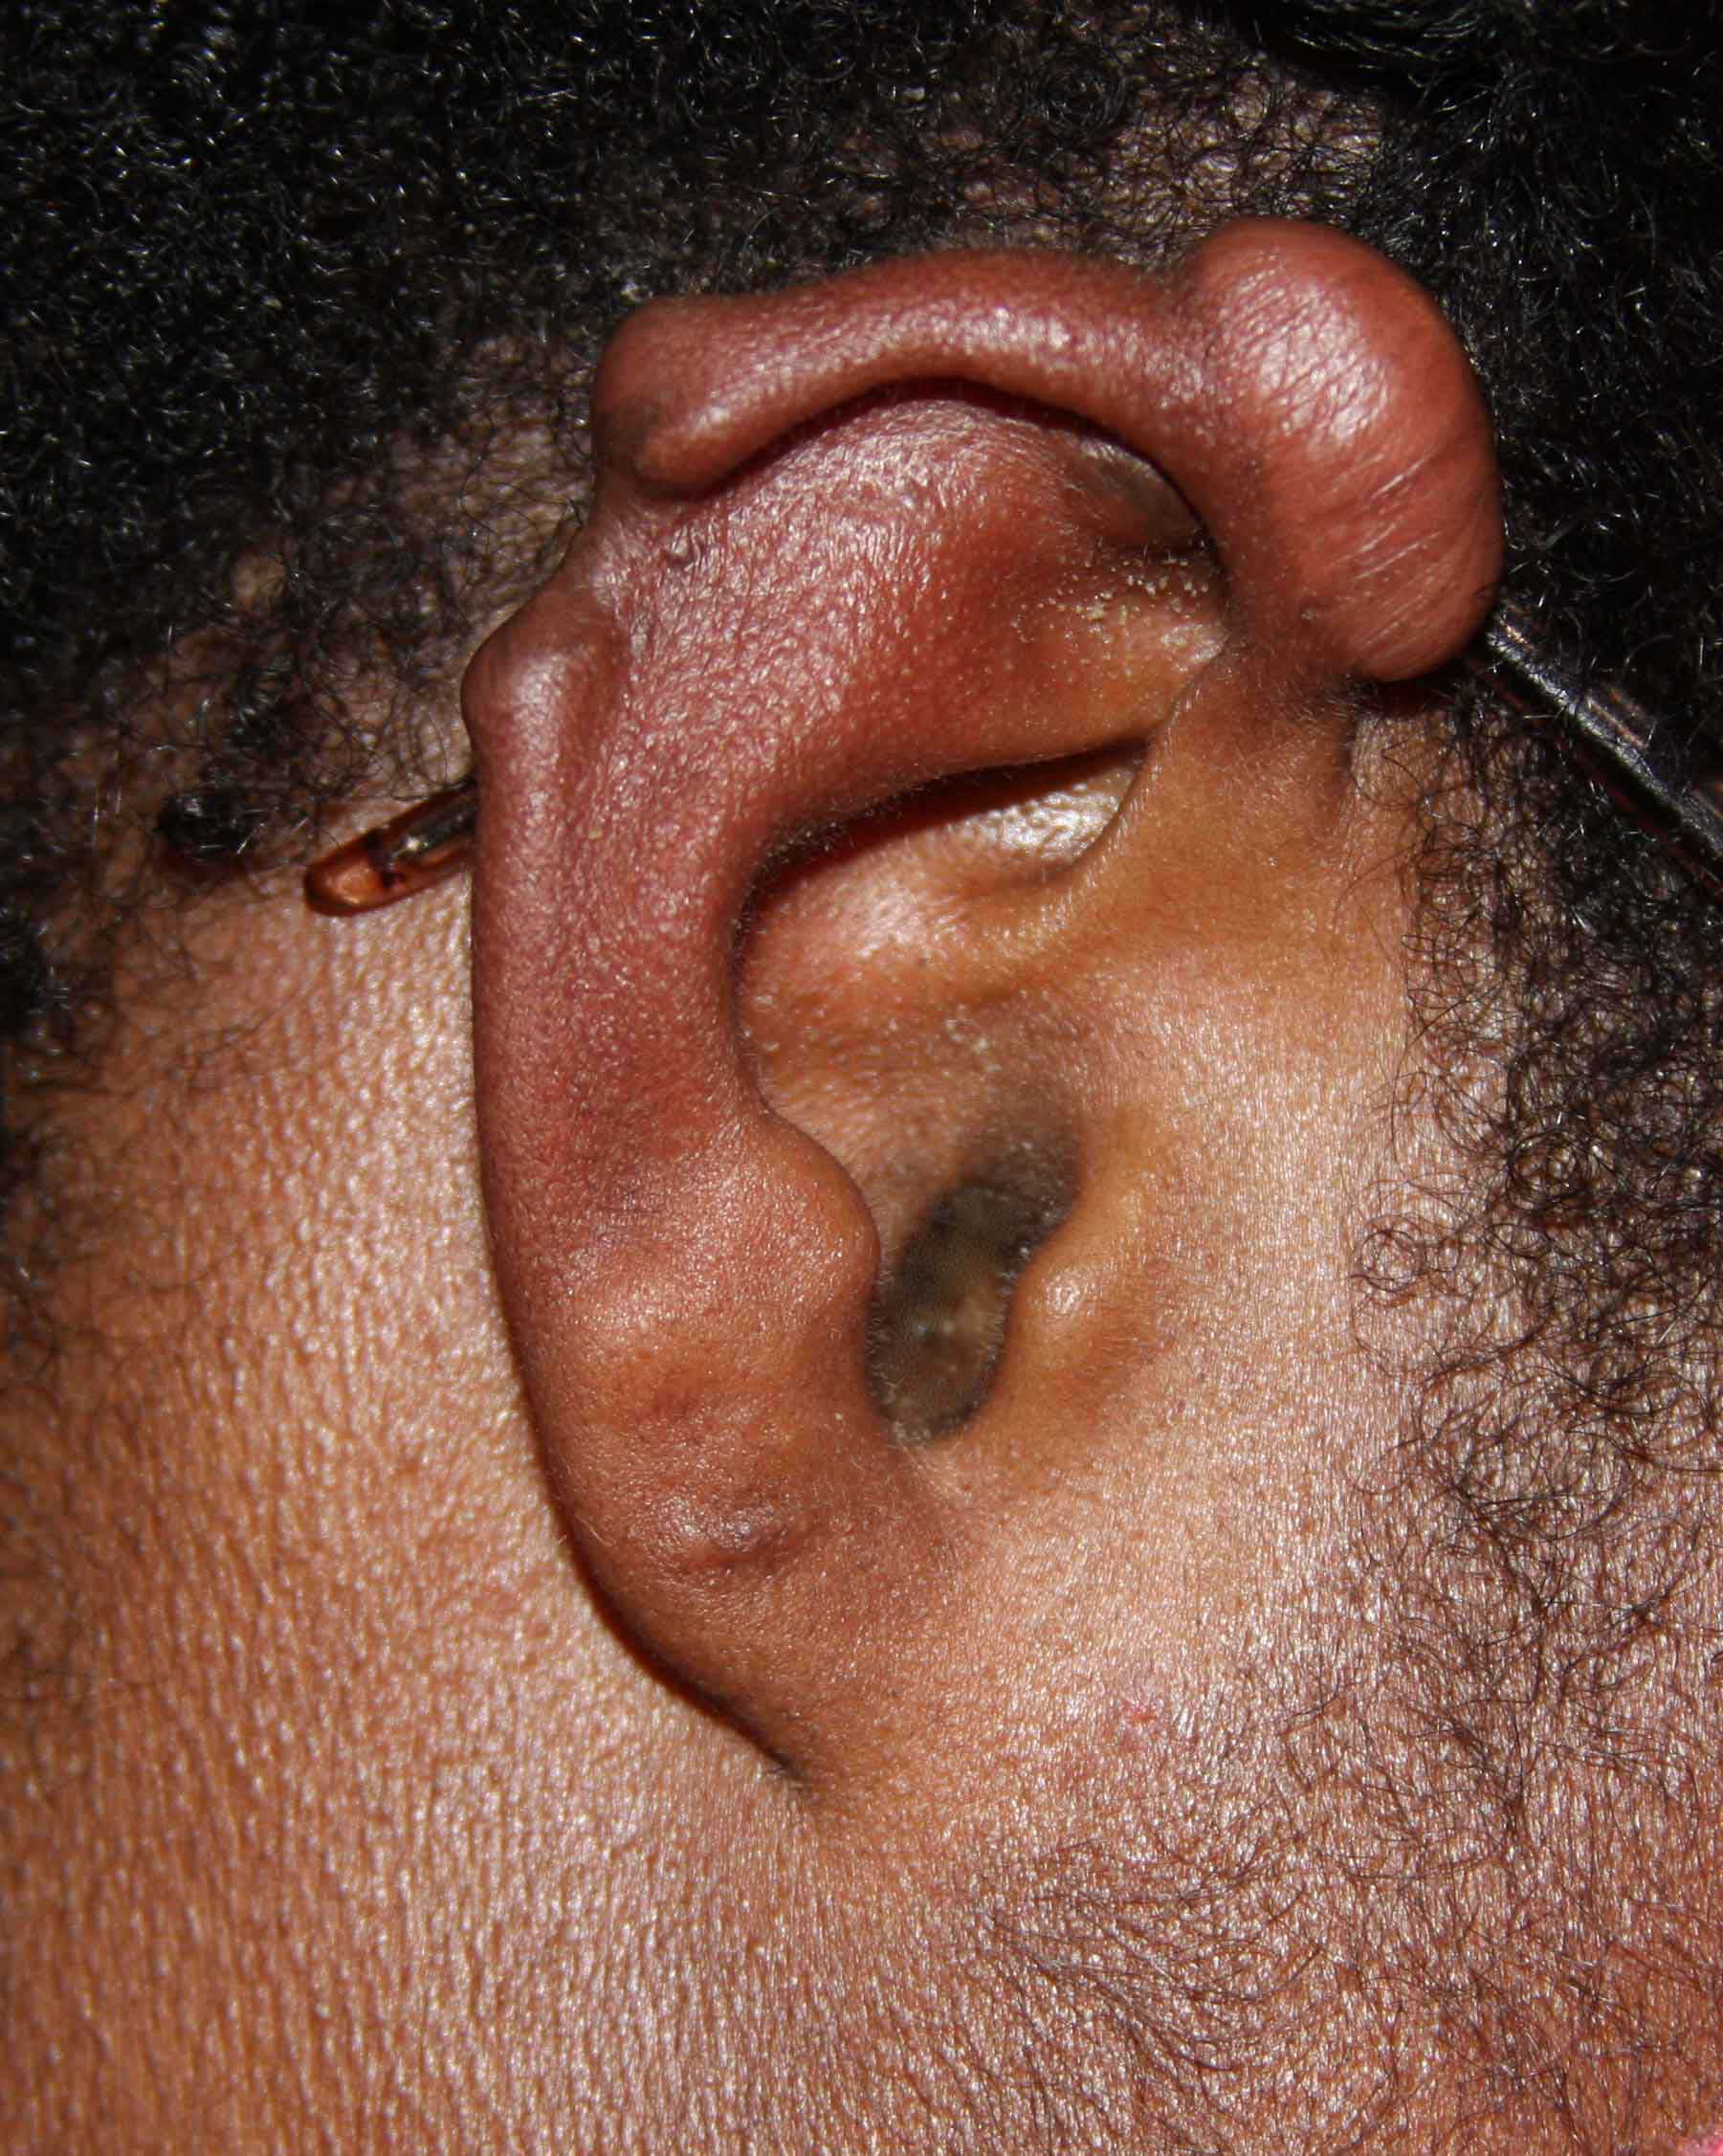 Keloid - Rubber Band Treatment - Poor Outcome